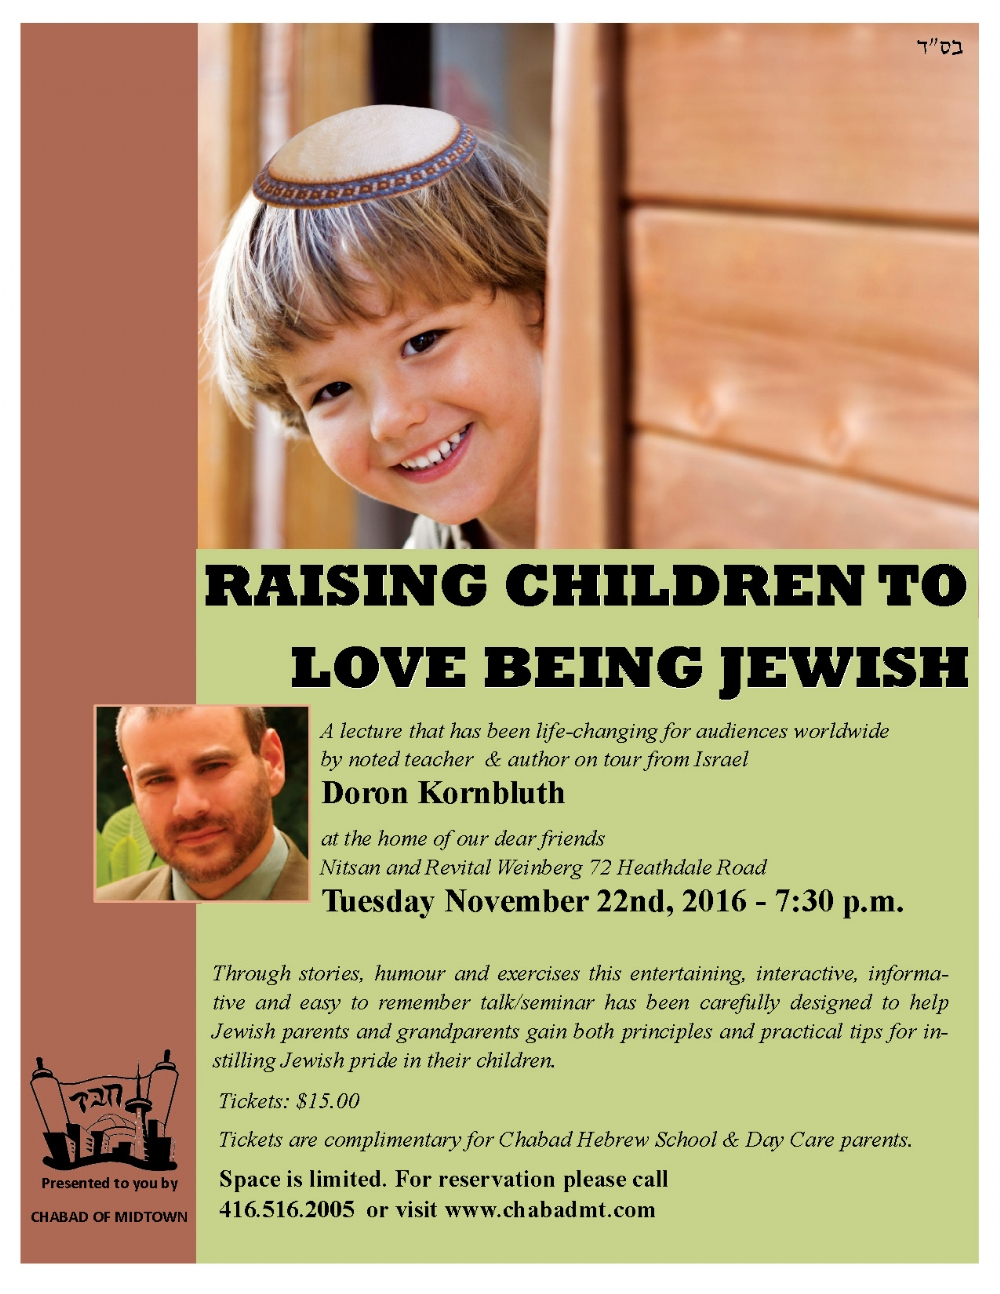 Raising Children to Love Being Jewish